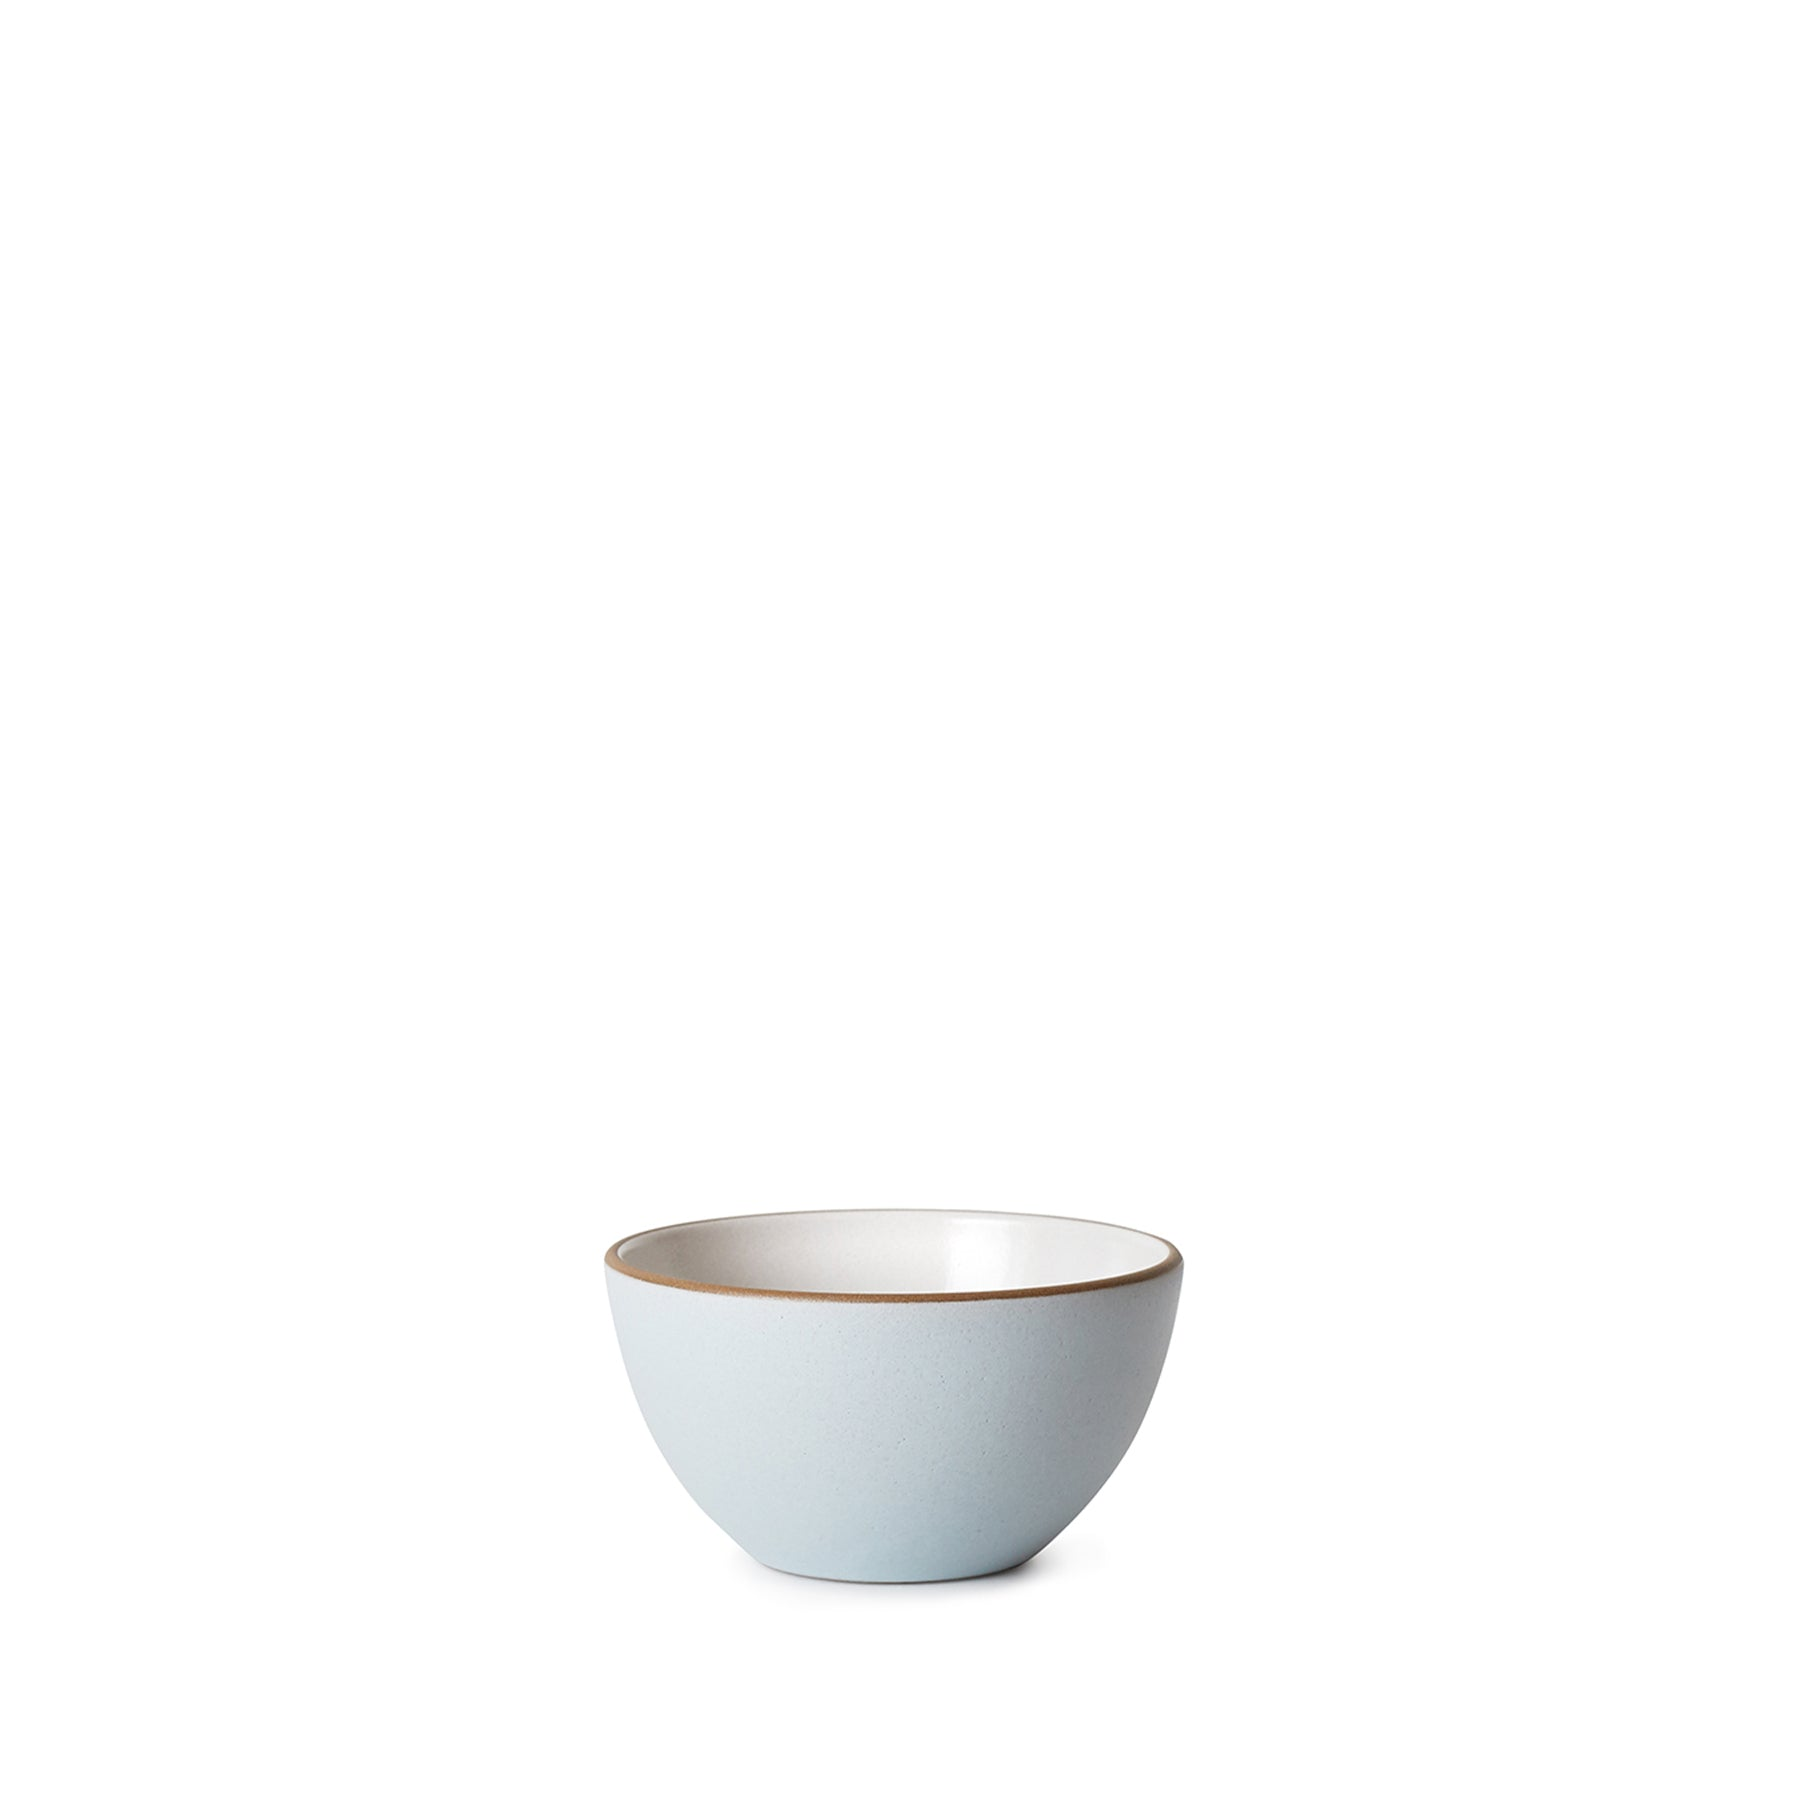 Dessert Bowl in Opaque White/Glacier Zoom Image 1